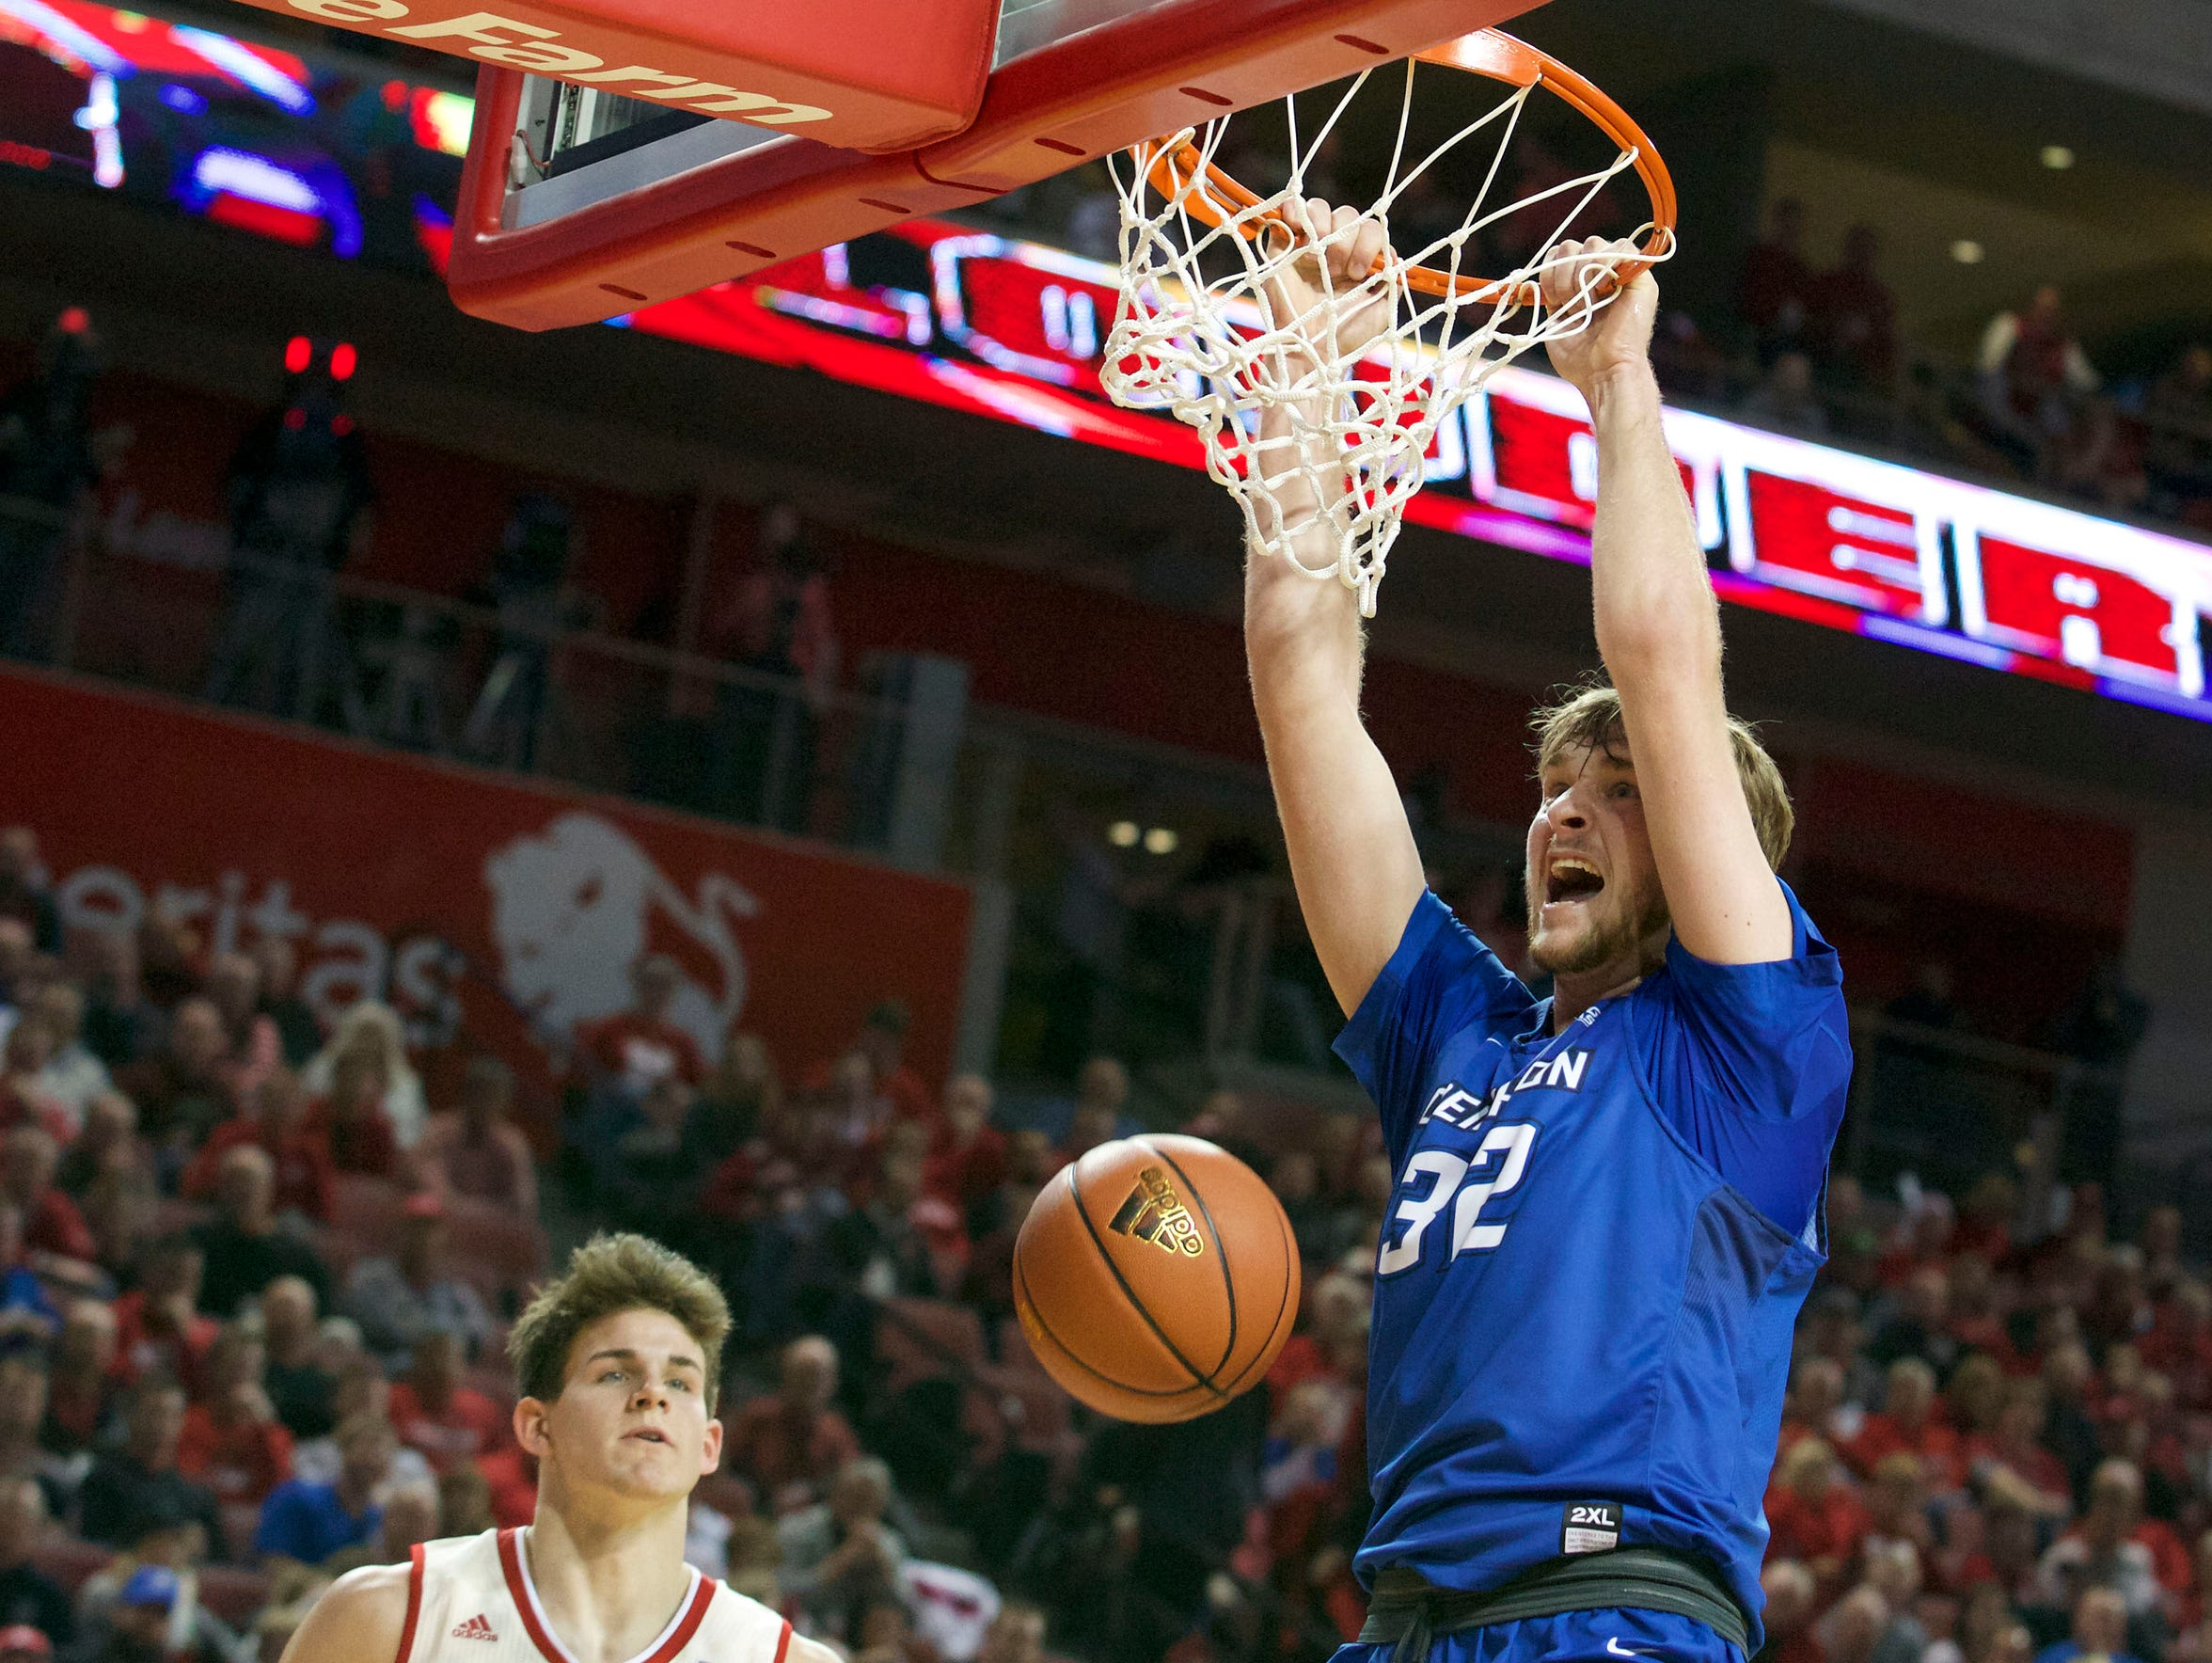 Creighton forward Toby Hegner played a Berlin High School in Berlin, Wisconsin, and holds the record in points and rebounds there.